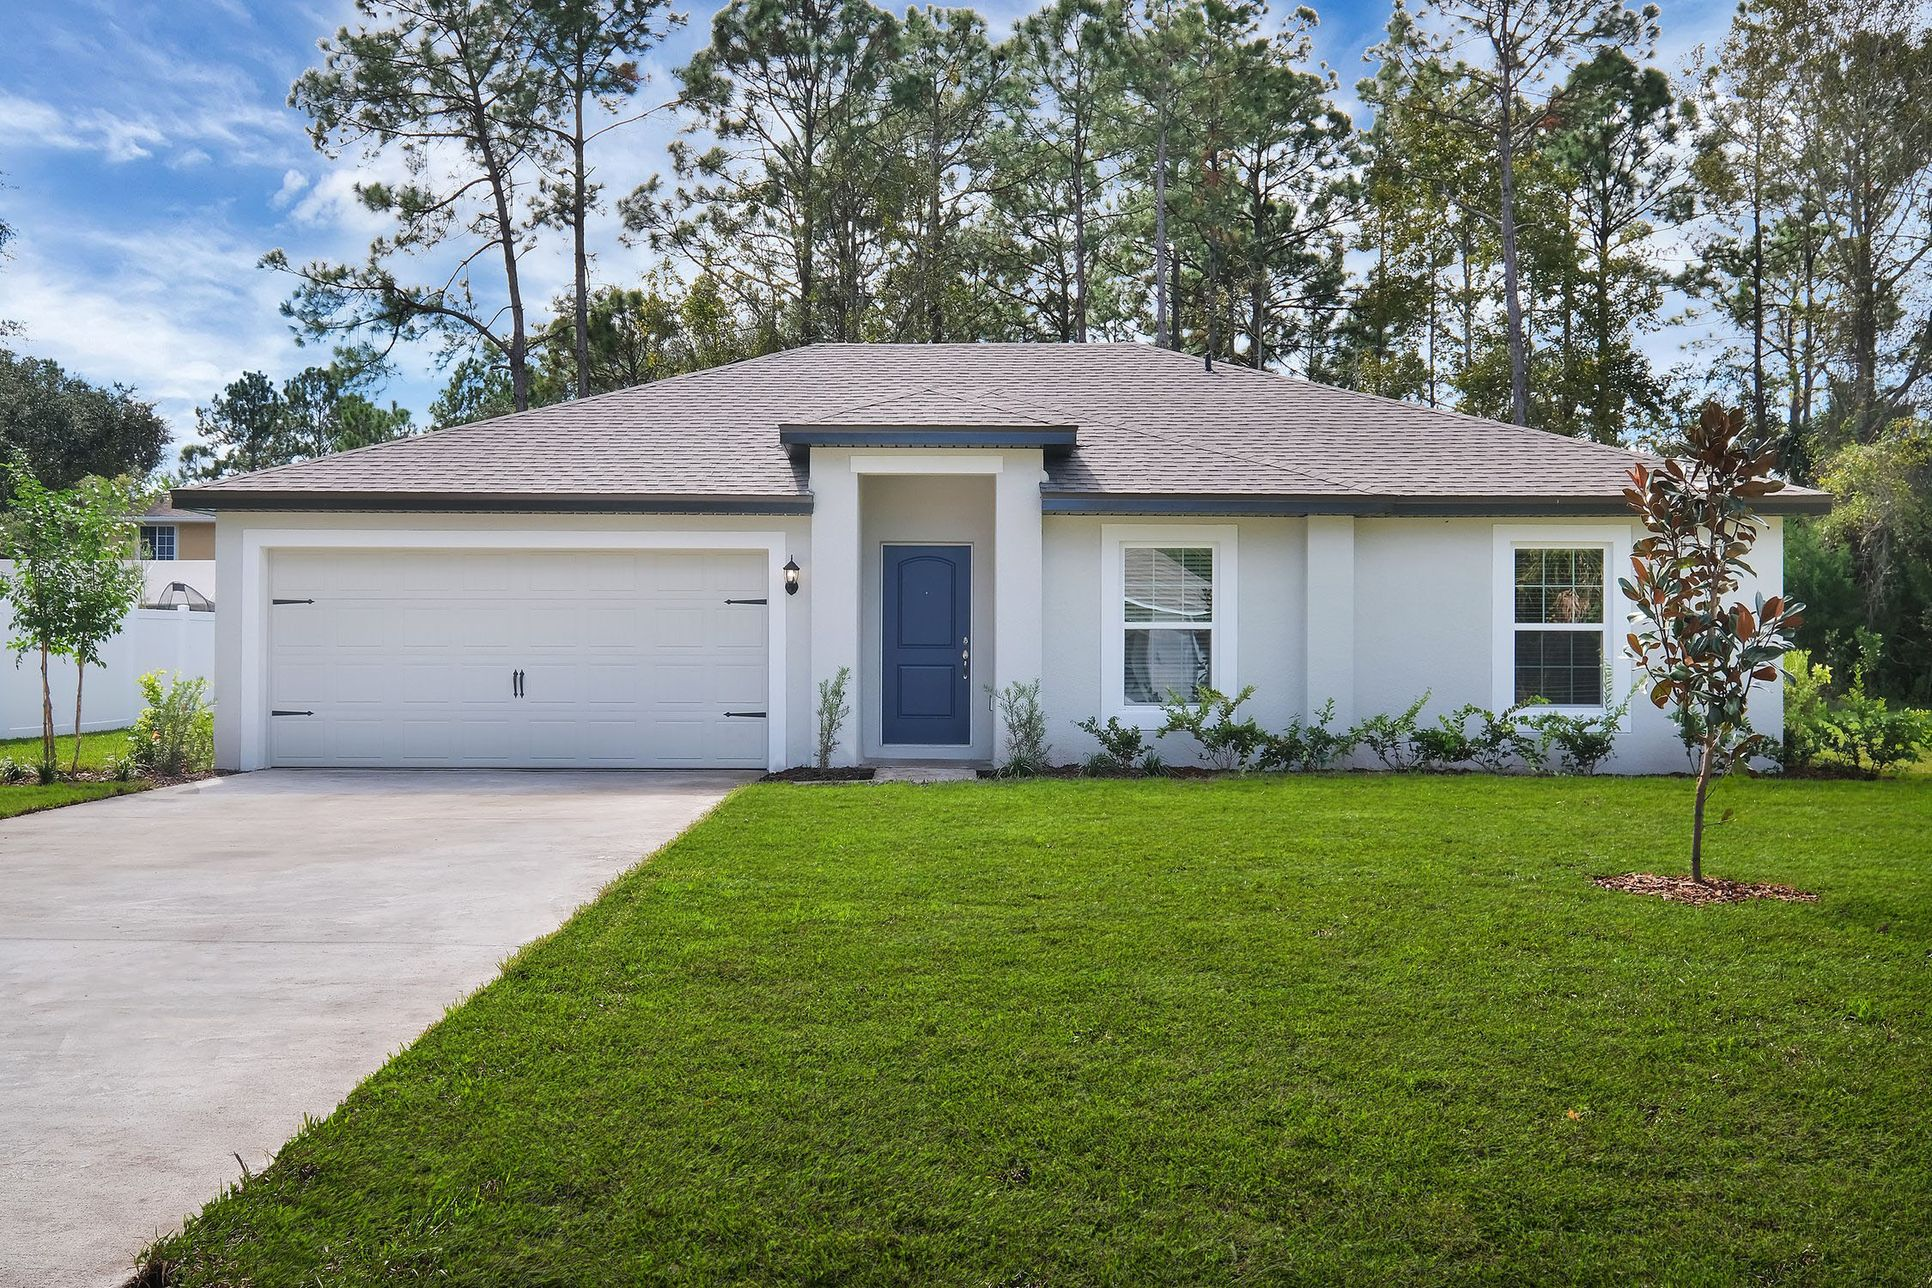 The Vero by LGI Homes:Spacious new home with incredible curb appeal